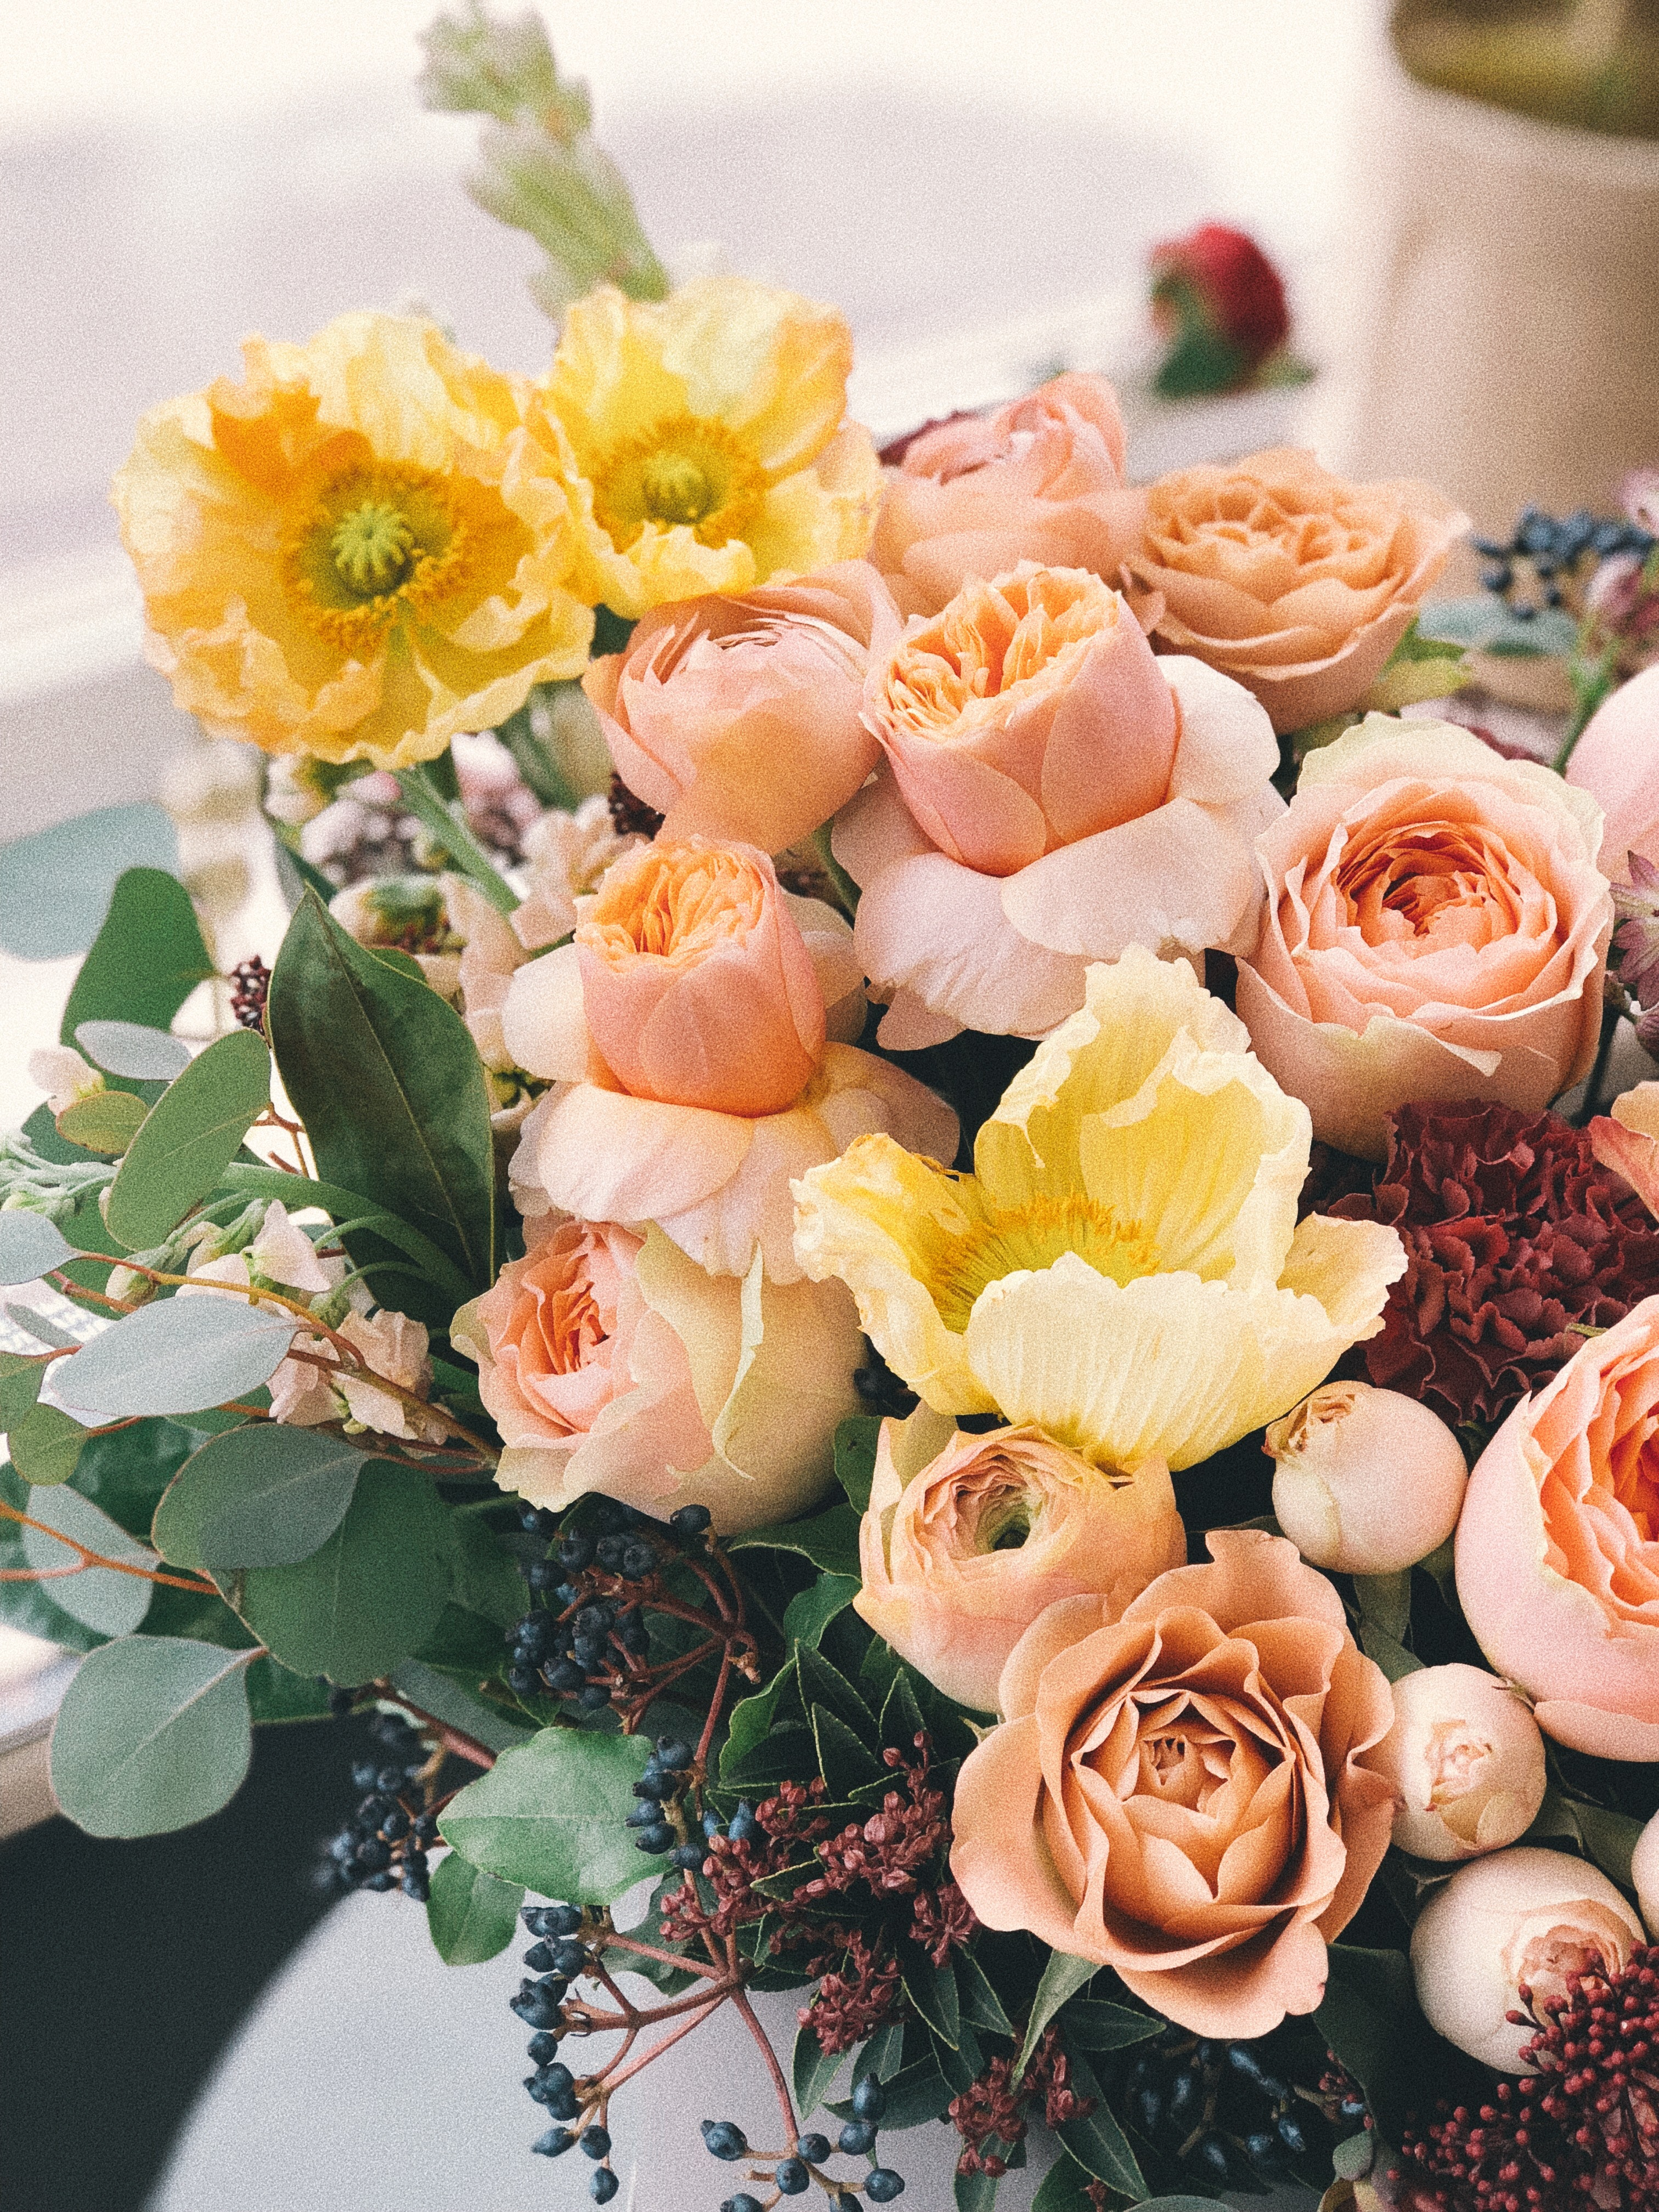 Pink And Yellow Flowers Free Stock Photo